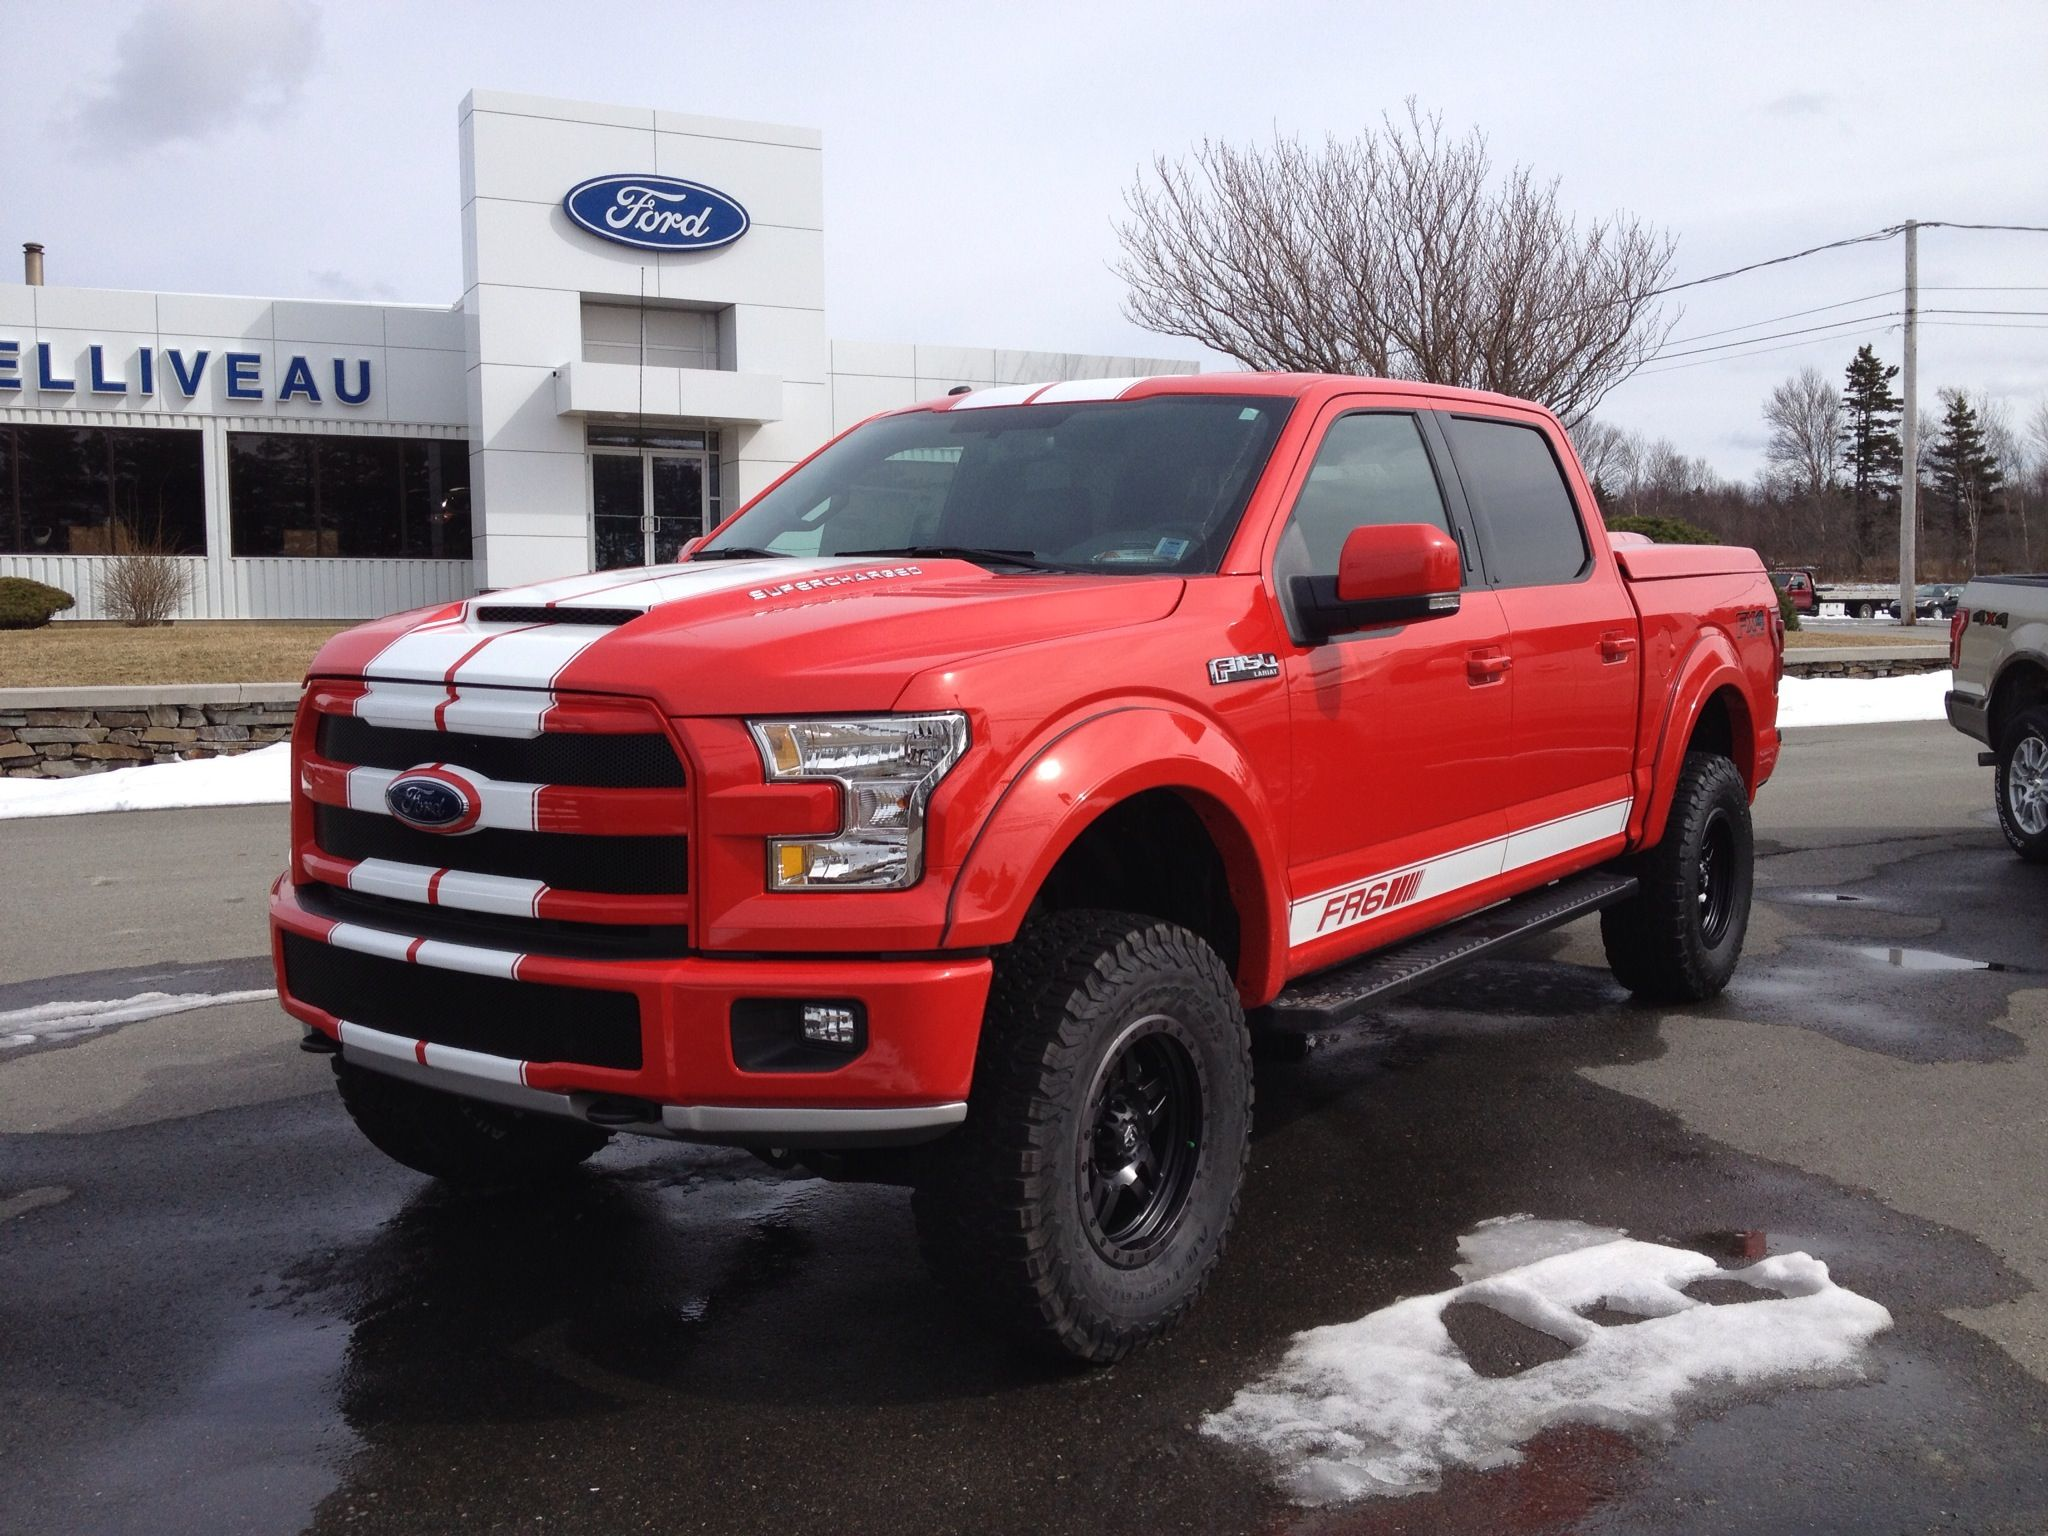 2017 ford f150 4x4 fr6 for sale at belliveau motors in church point ns